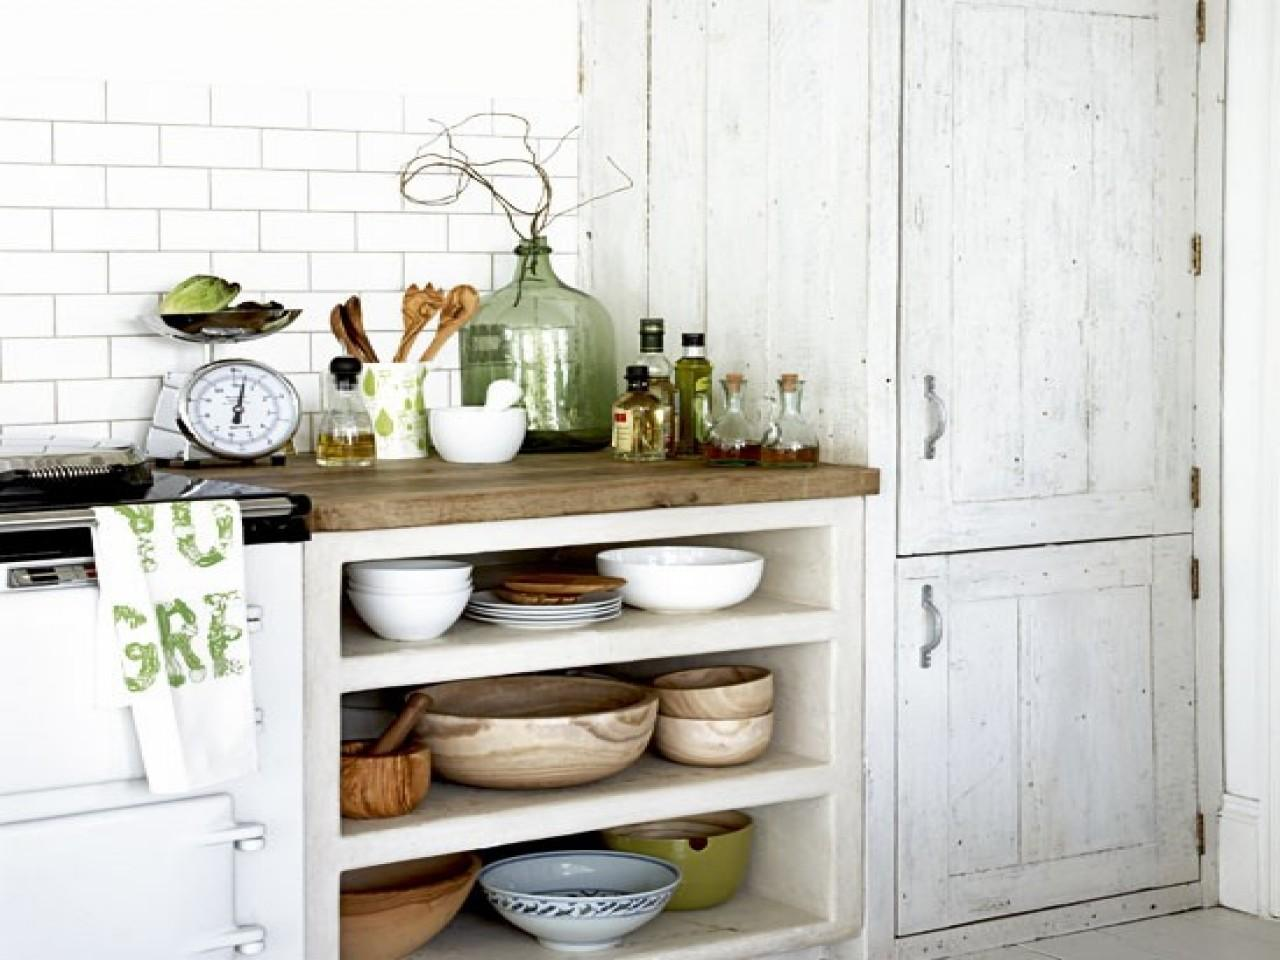 Shop Shelving Ideas Rustic Style Wall Storage Cabinet